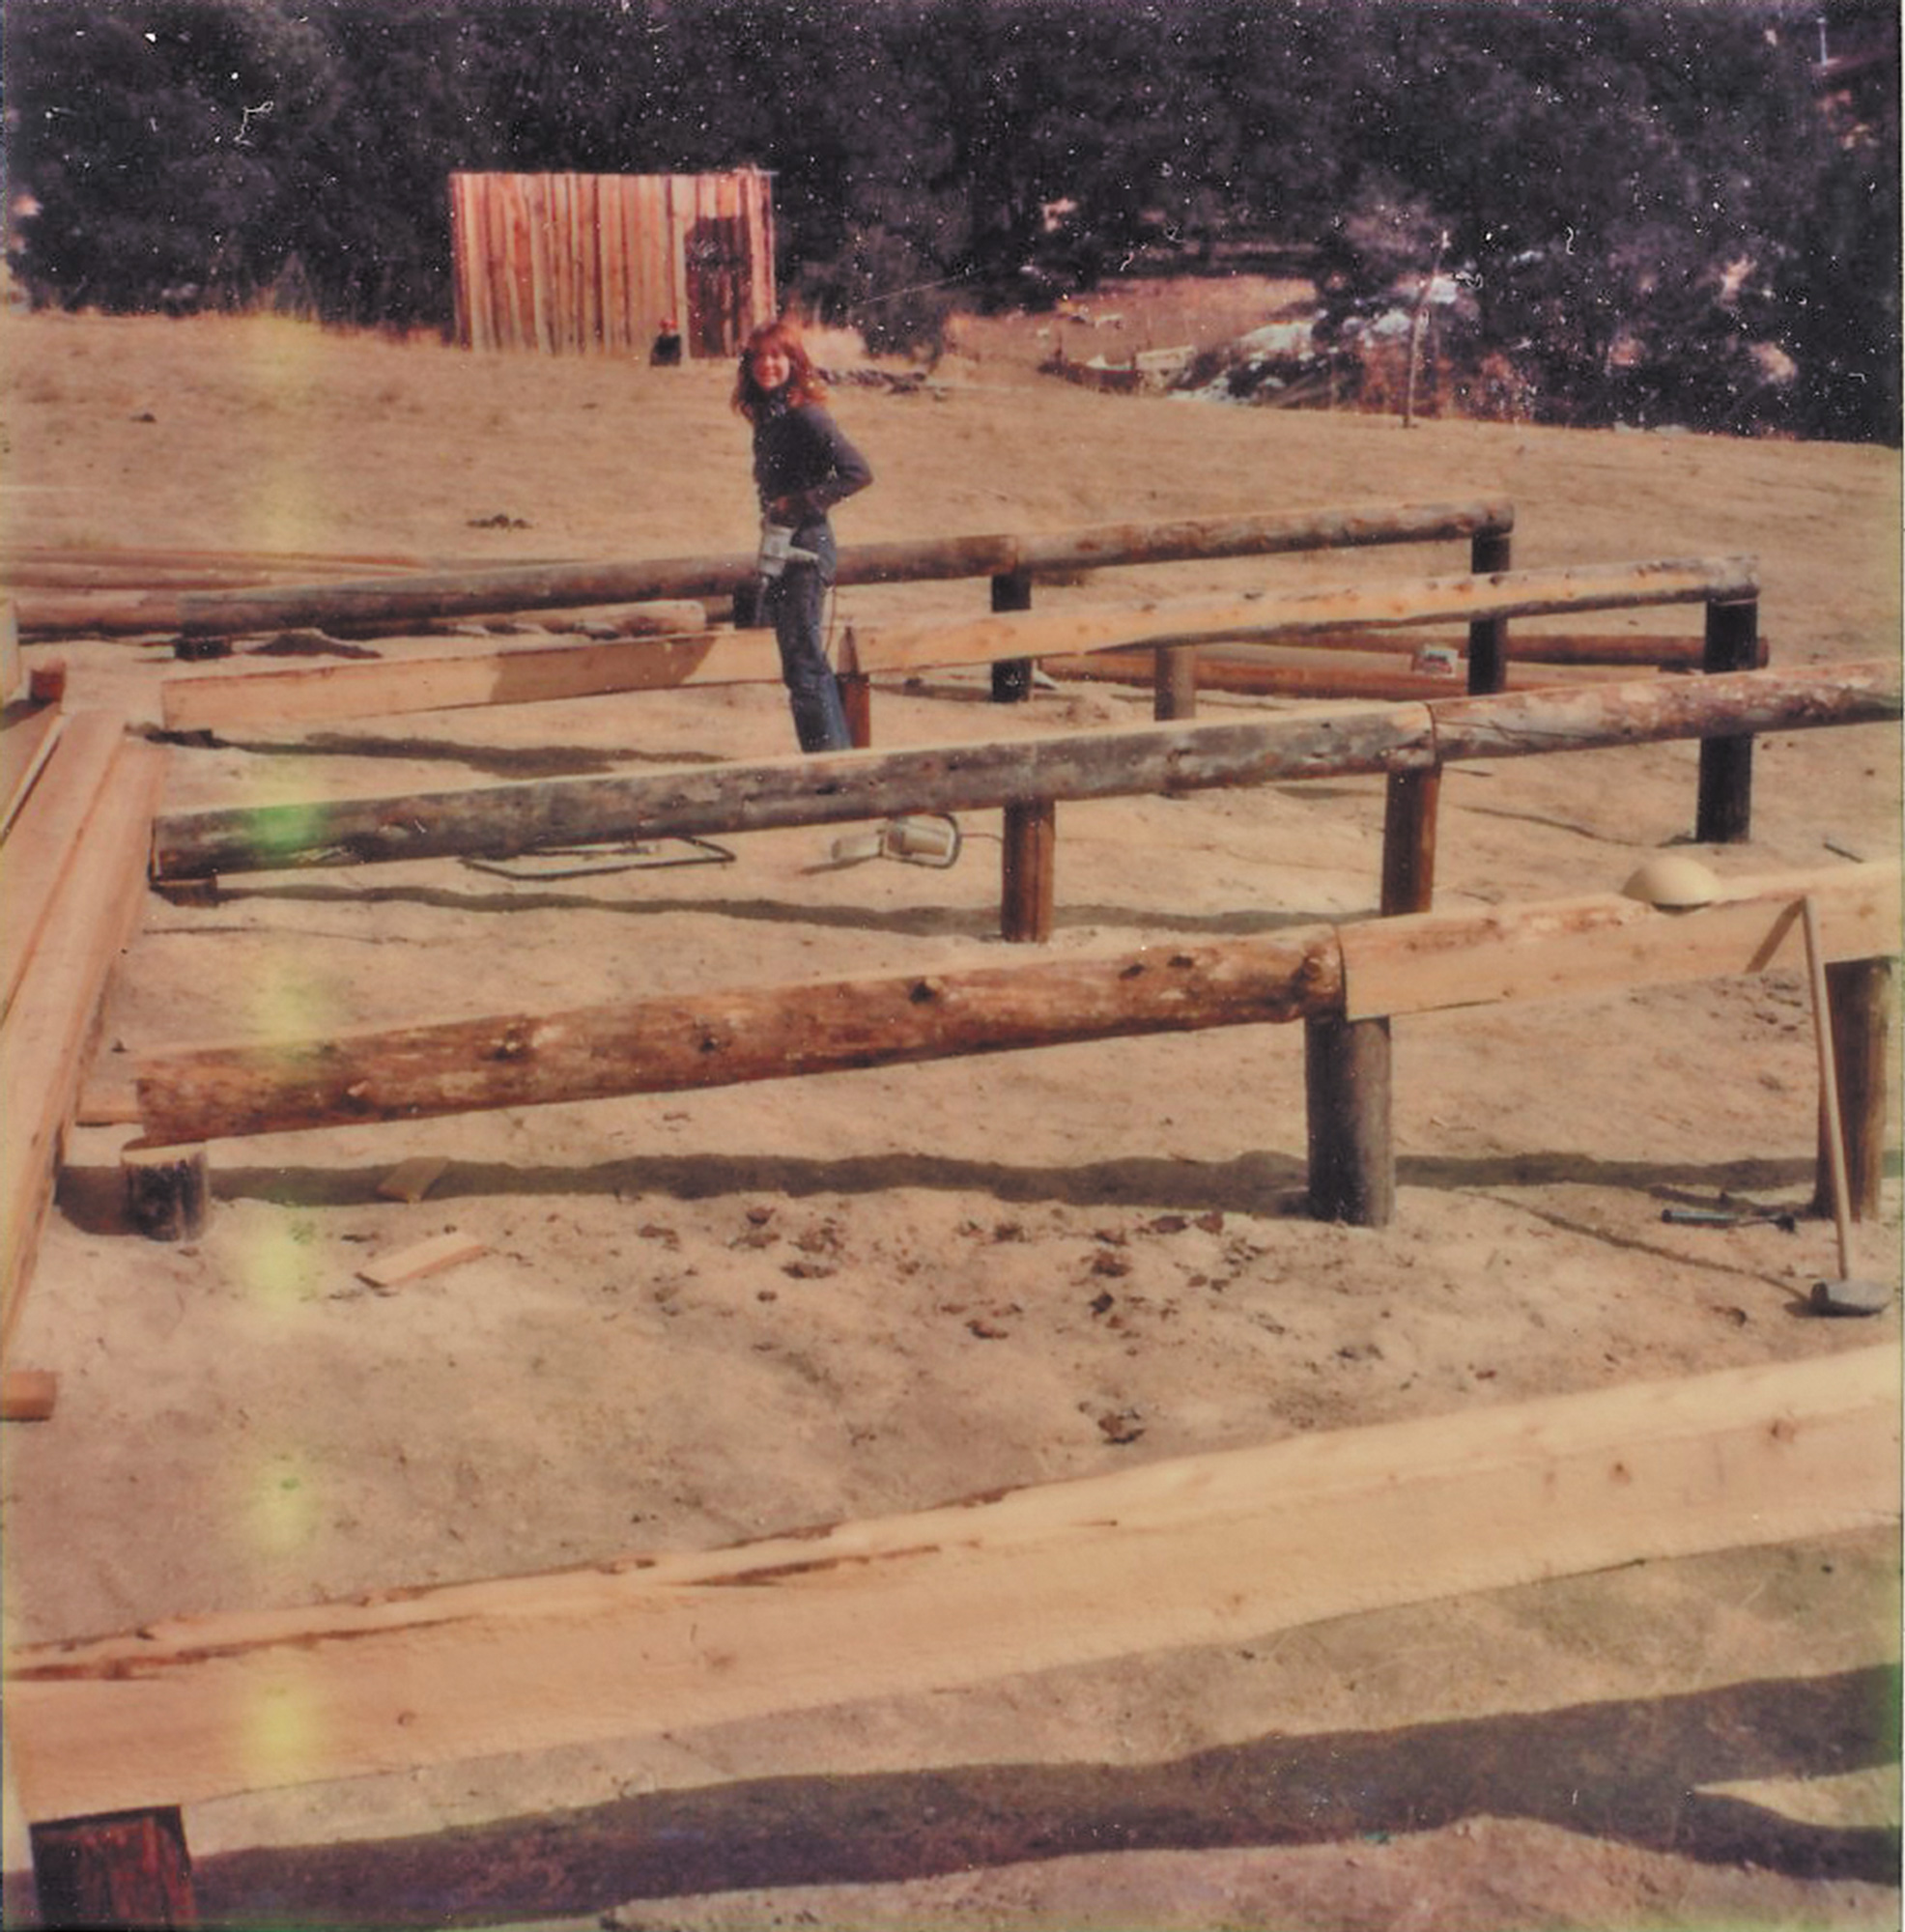 The World Needs More Libres_LindaFlemming_Beatie_Wolfe_7.-LF-house-floor-joists-1978